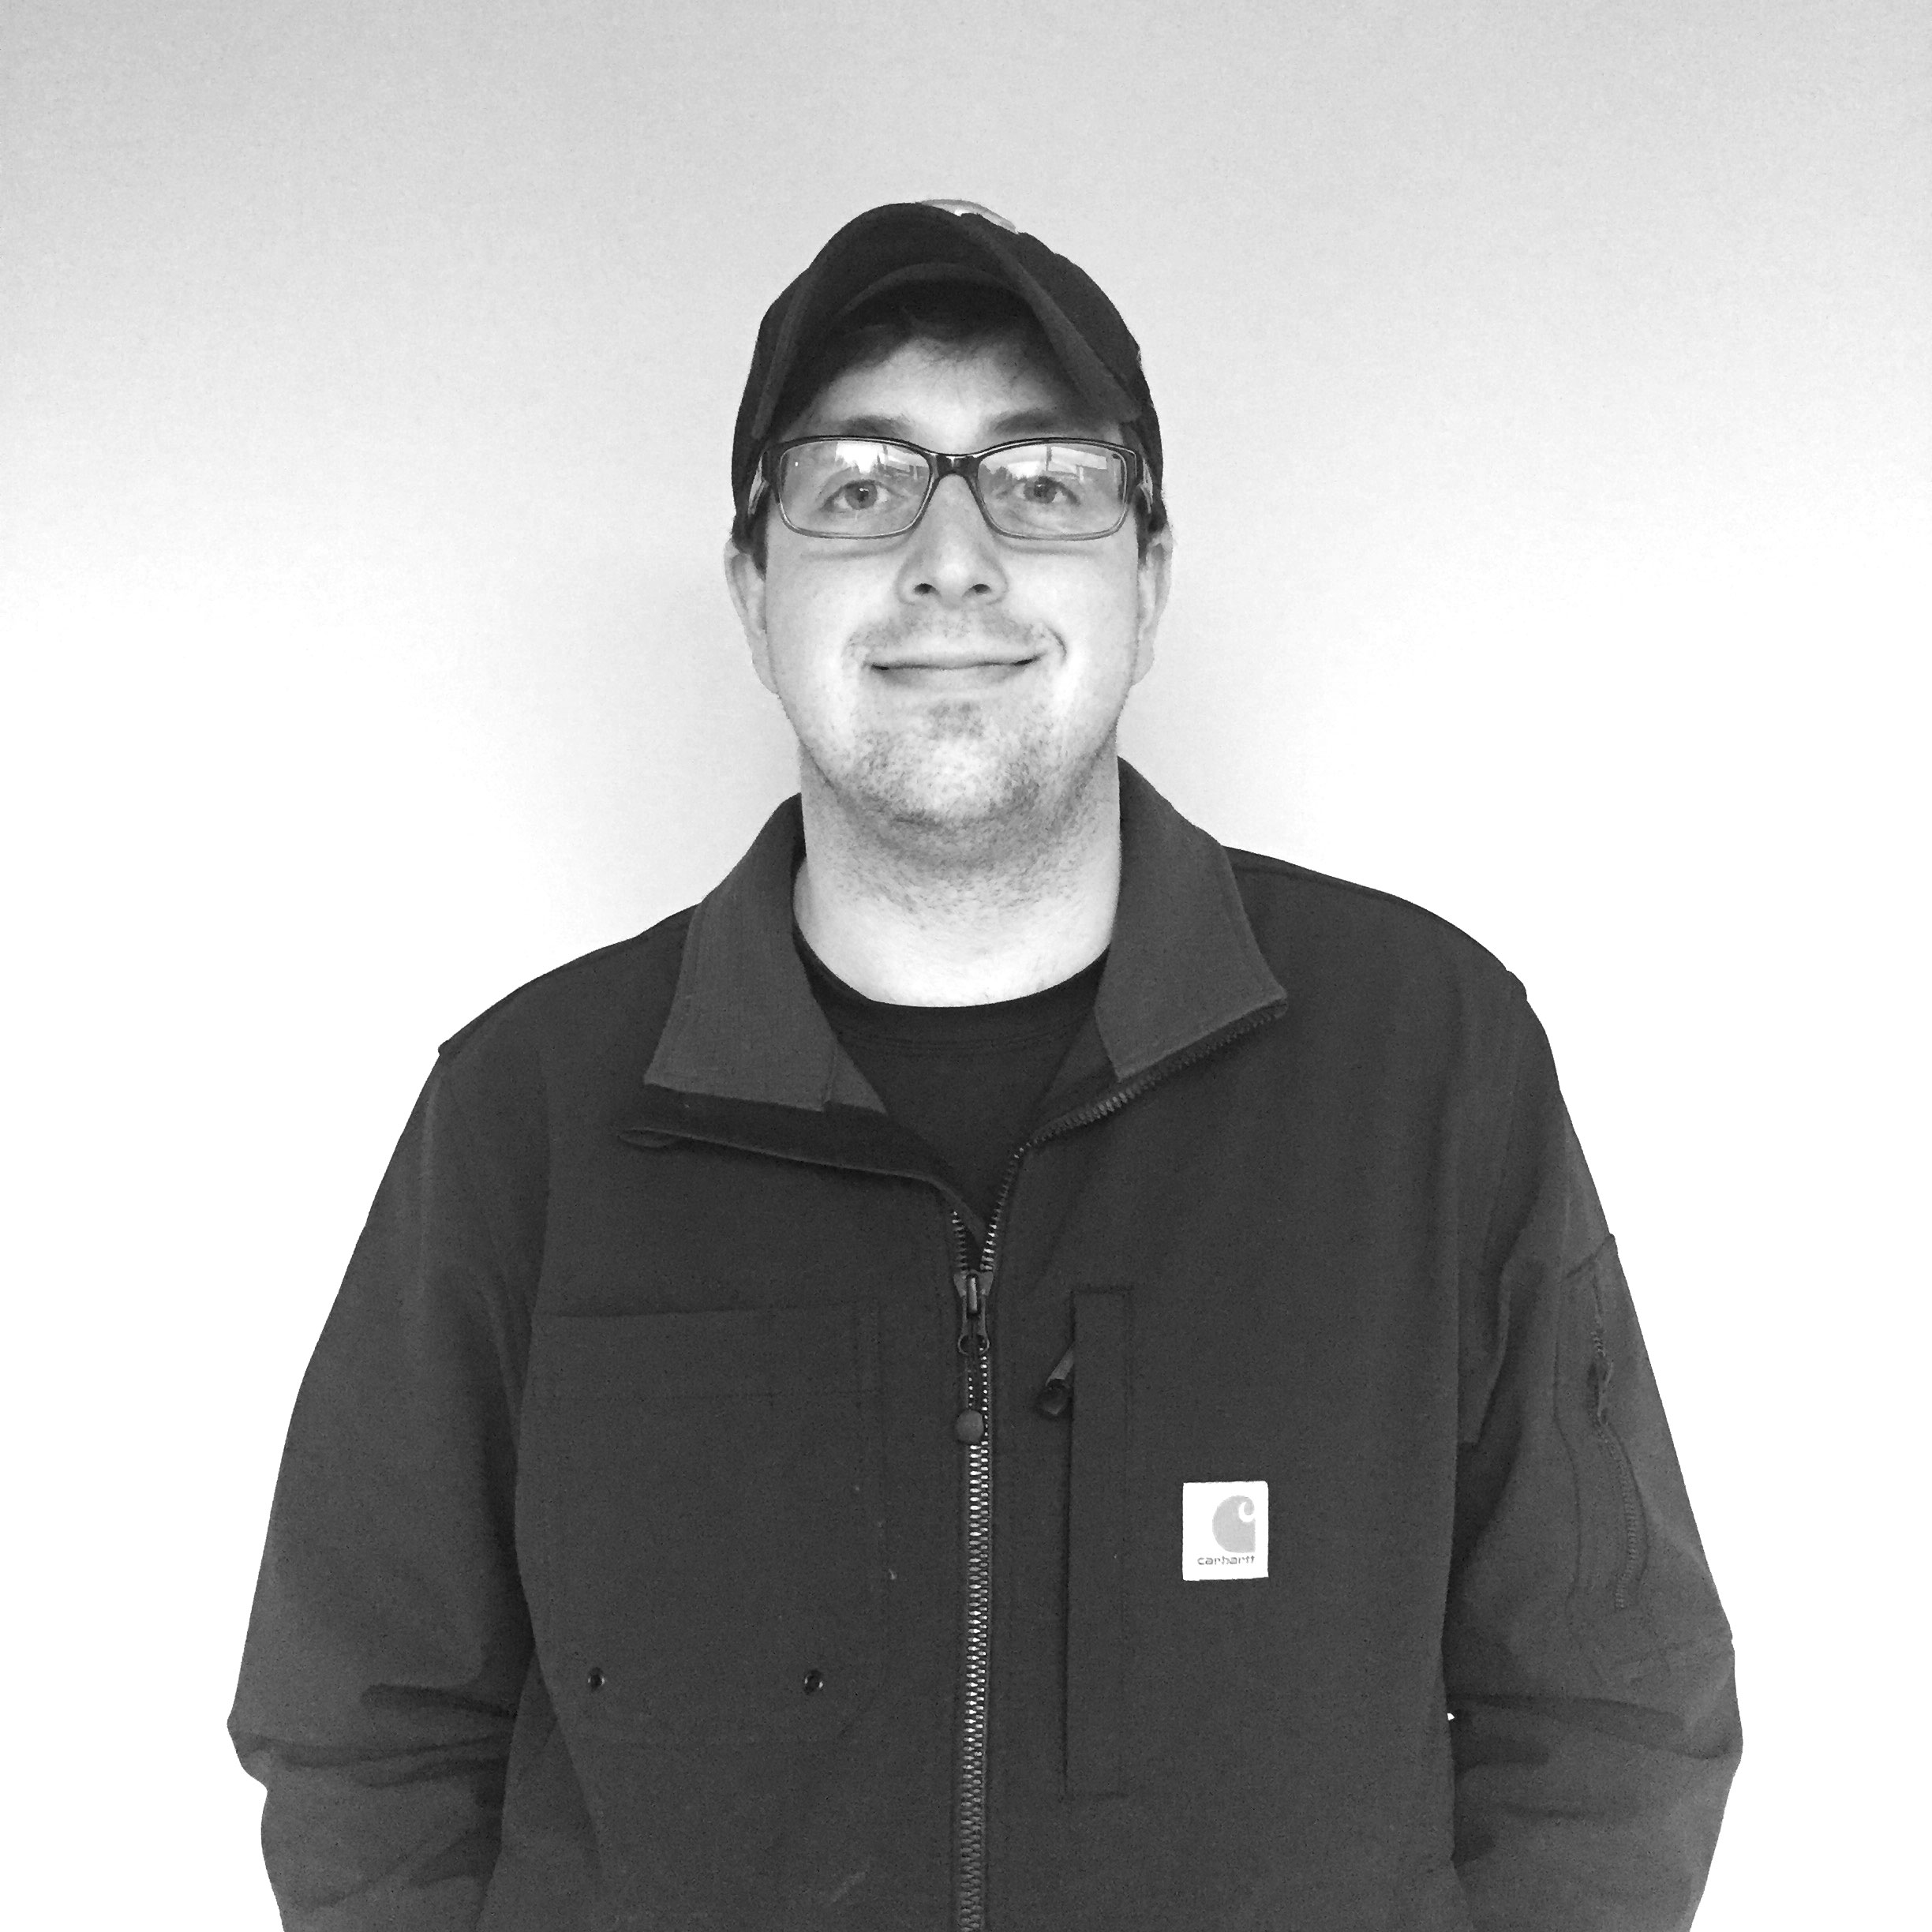 CARL MILLIGAN - AV Project Manager    Hidden Talent/Hobby:  Airbrushing   Favorite Color:  Tennessee Orange   Marvel Alter-Ego Superpower:  Eidetic memory   Favorite thing about working with The AV Co.:  Having a new job every day